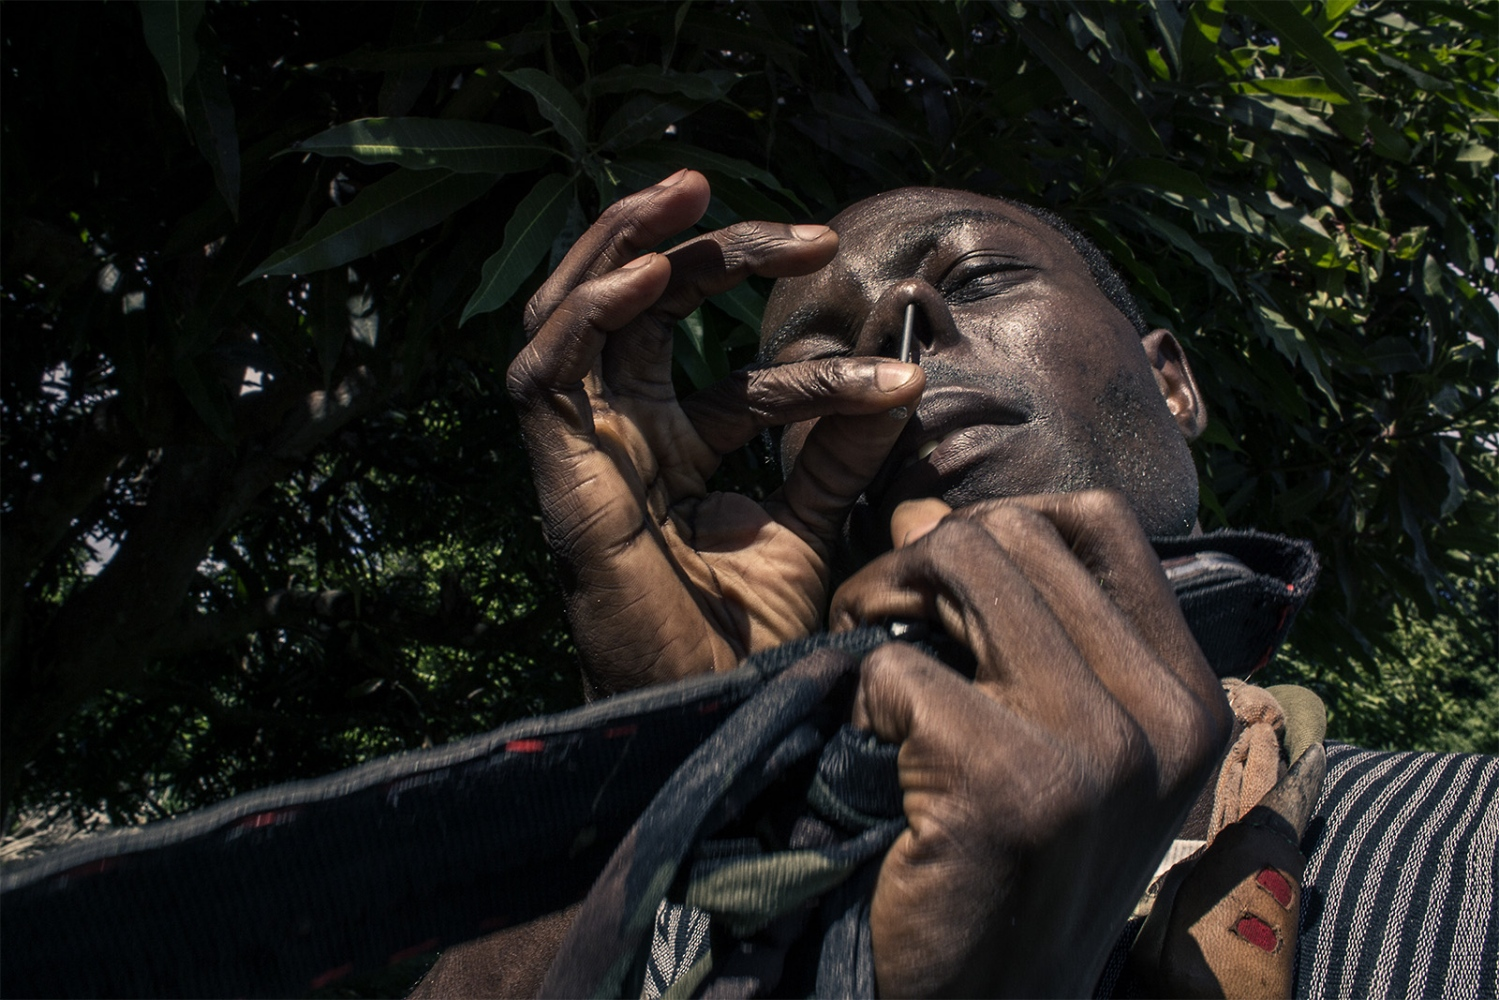 Enrique is the official Marabout of the area, so he's a leader, healer and protector. He's demonstrating his physical strength pushing a nail in his nose.